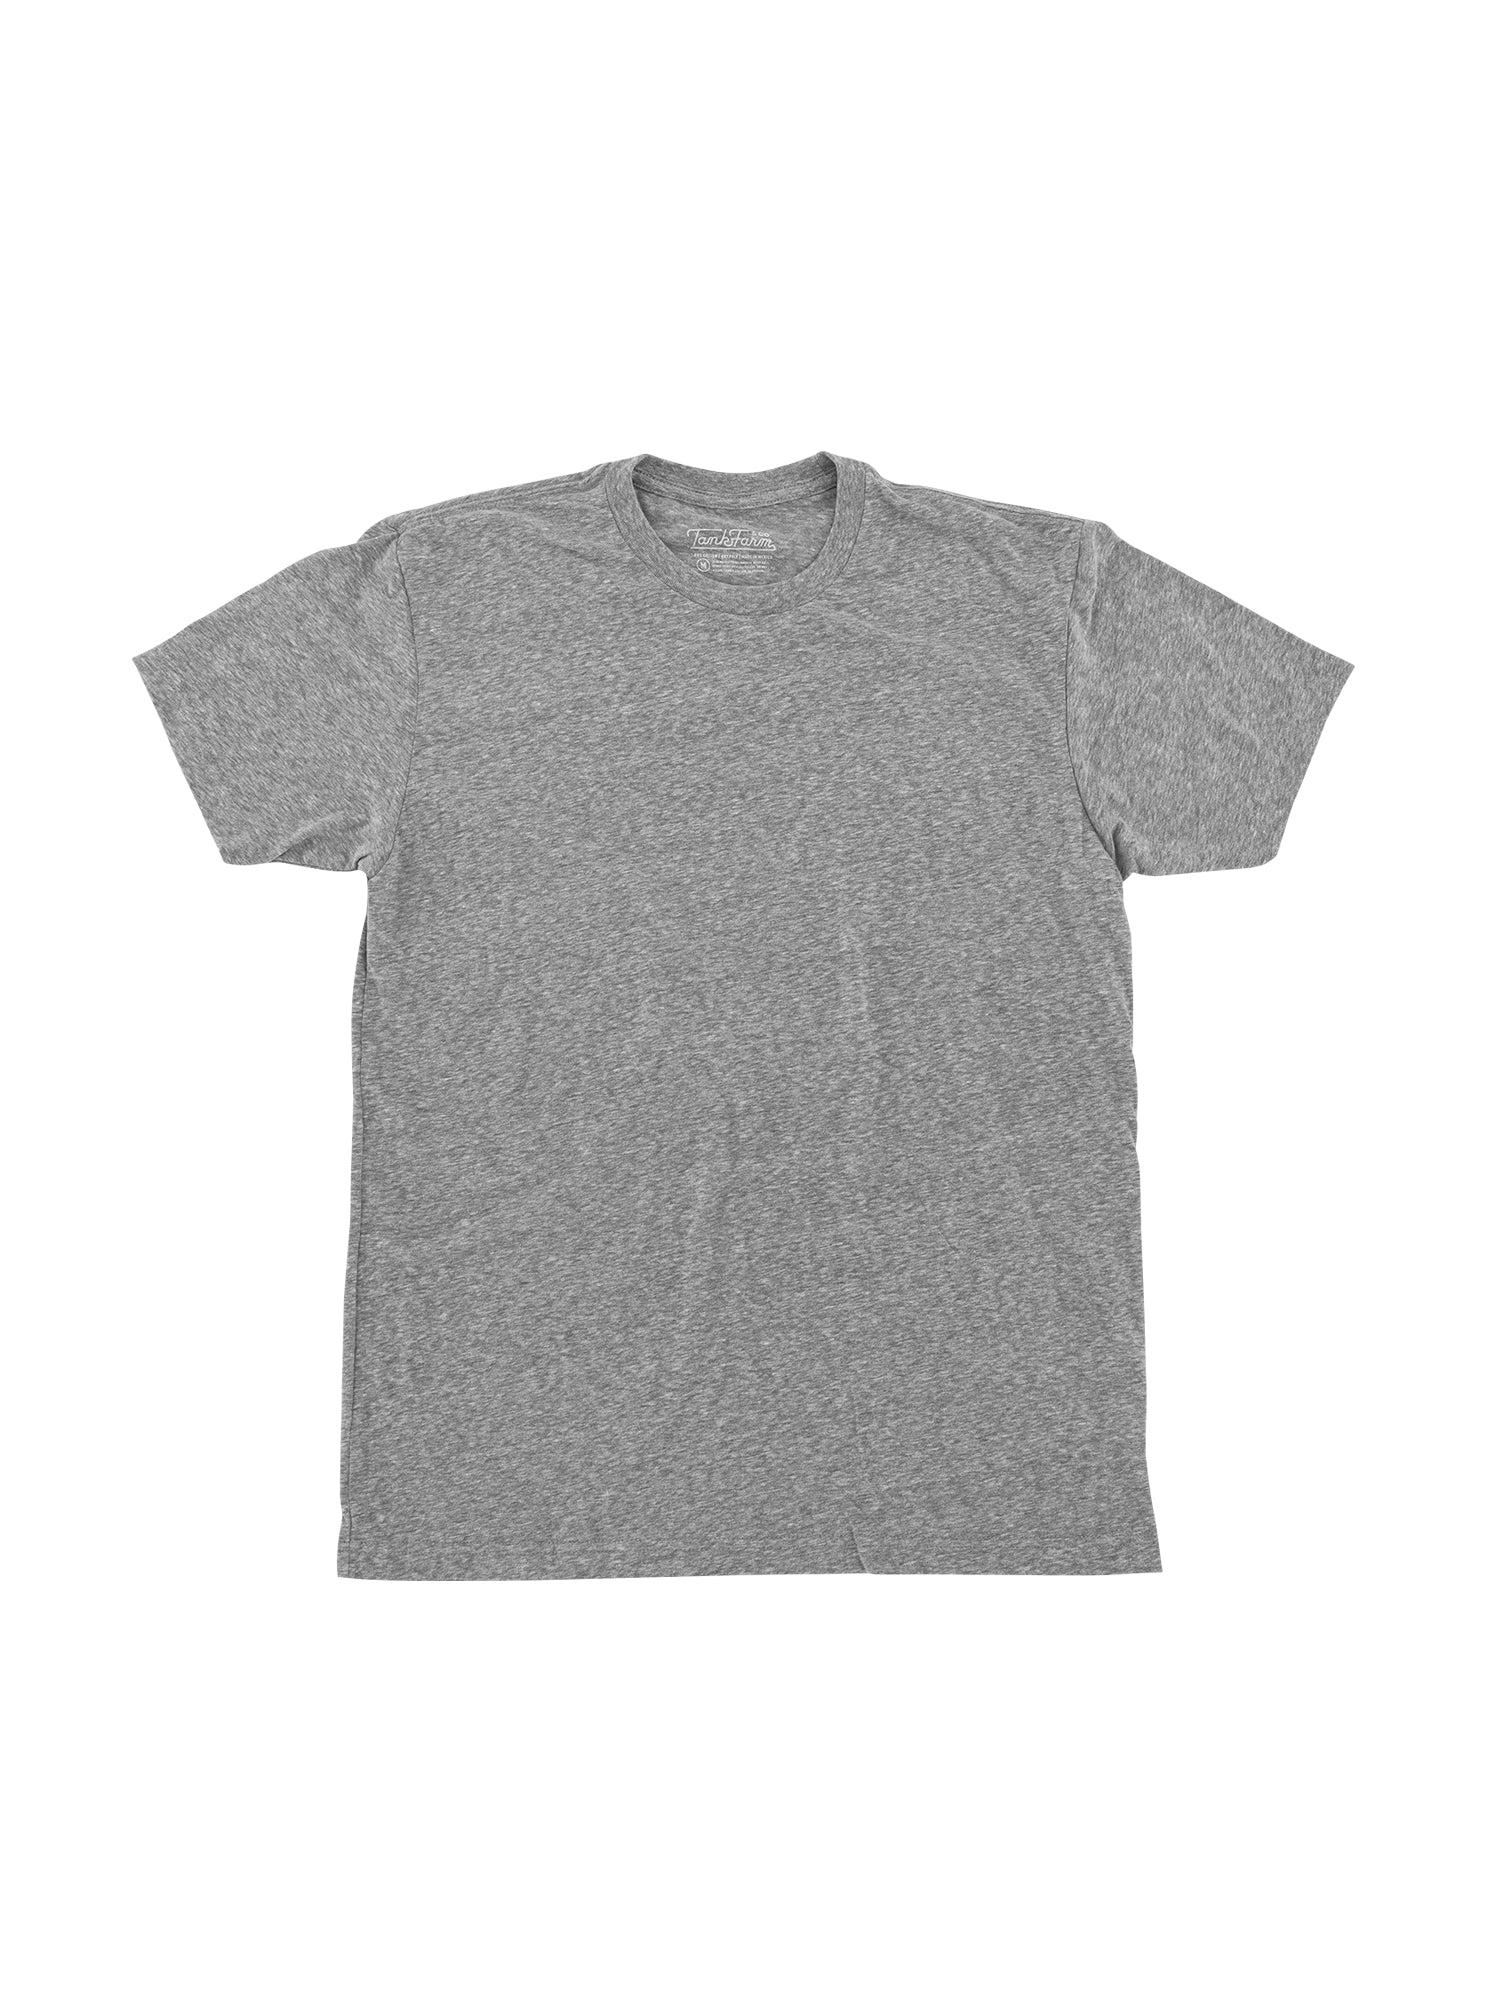 SUEDED CREW - SNOW HEATHER GREY